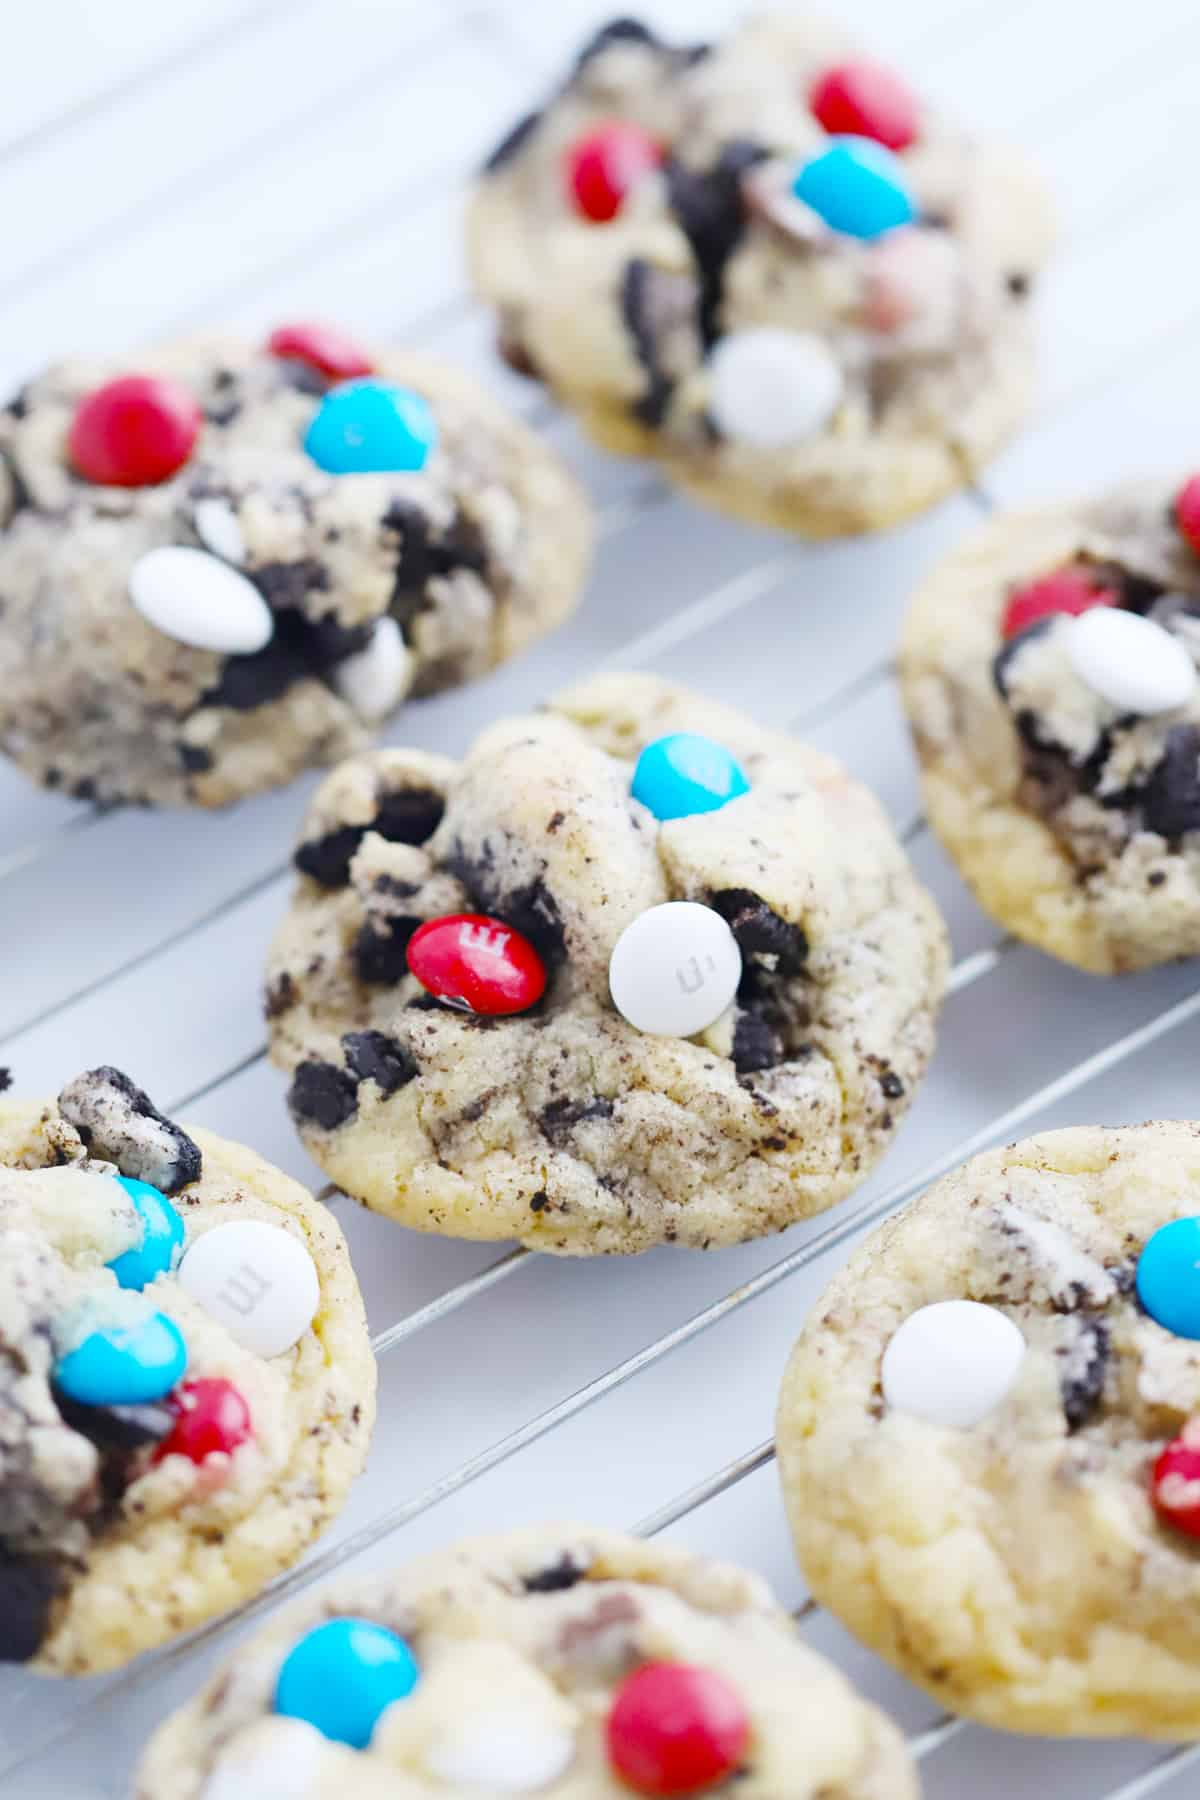 Oreo and M&M Cookies cooling on a baking rack.